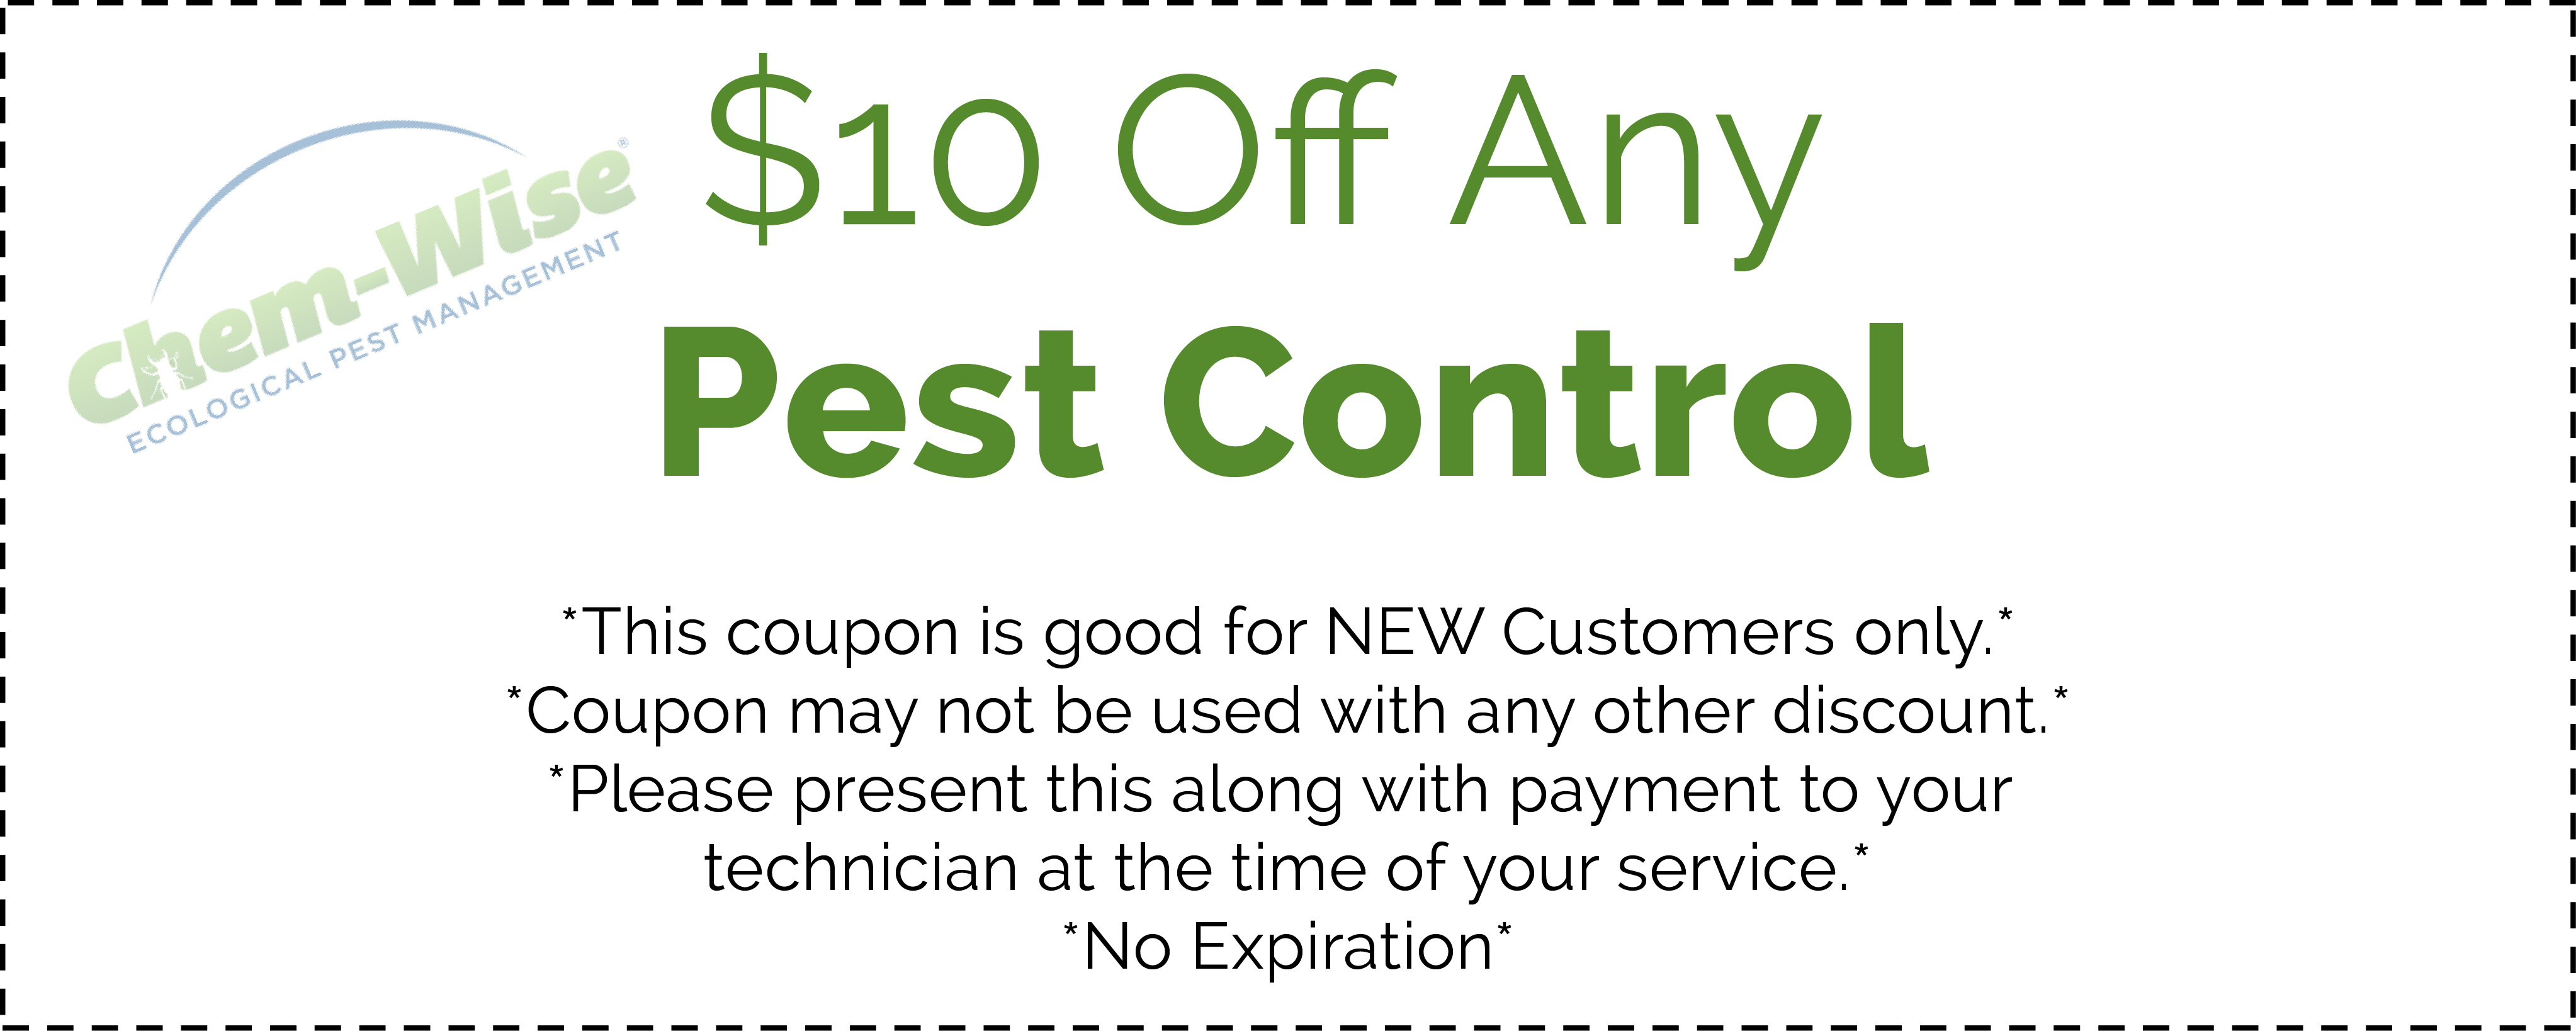 Coupon outline png. Get great pest control